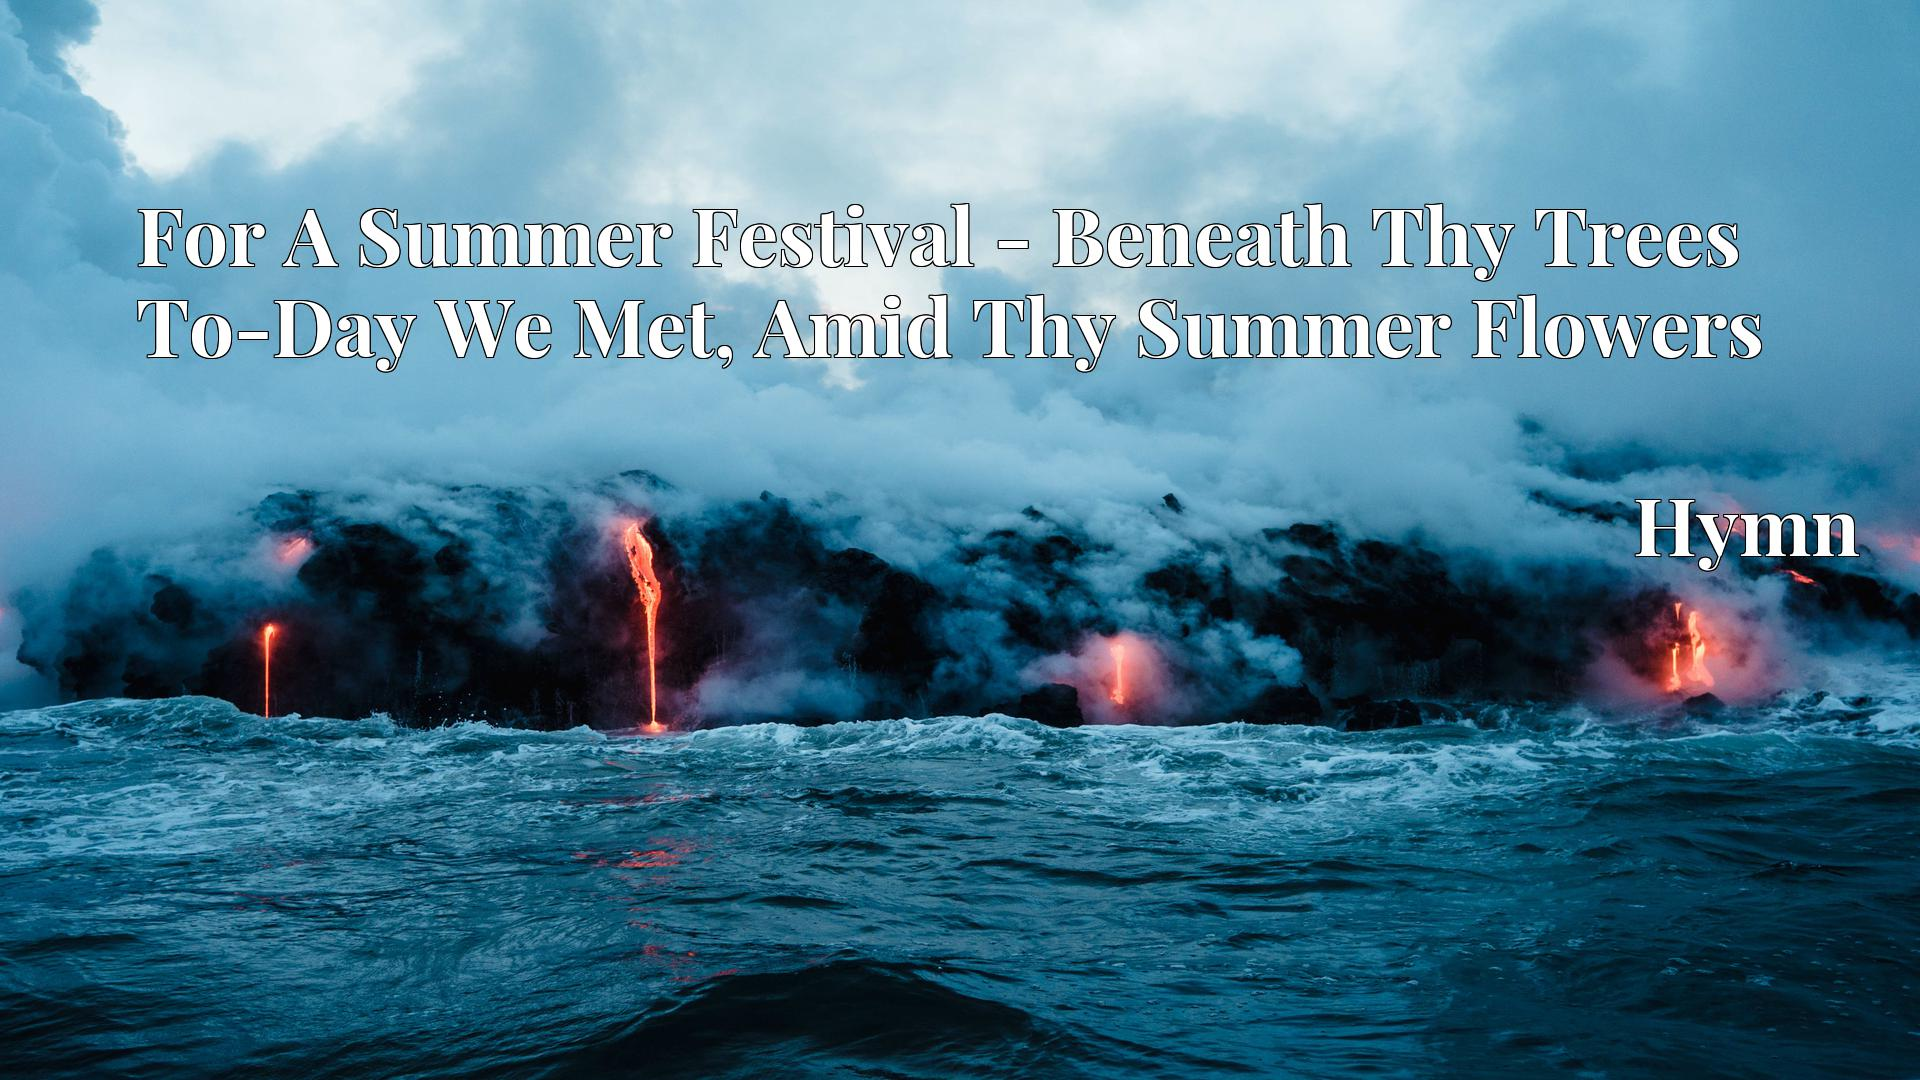 For A Summer Festival - Beneath Thy Trees To-Day We Met, Amid Thy Summer Flowers - Hymn